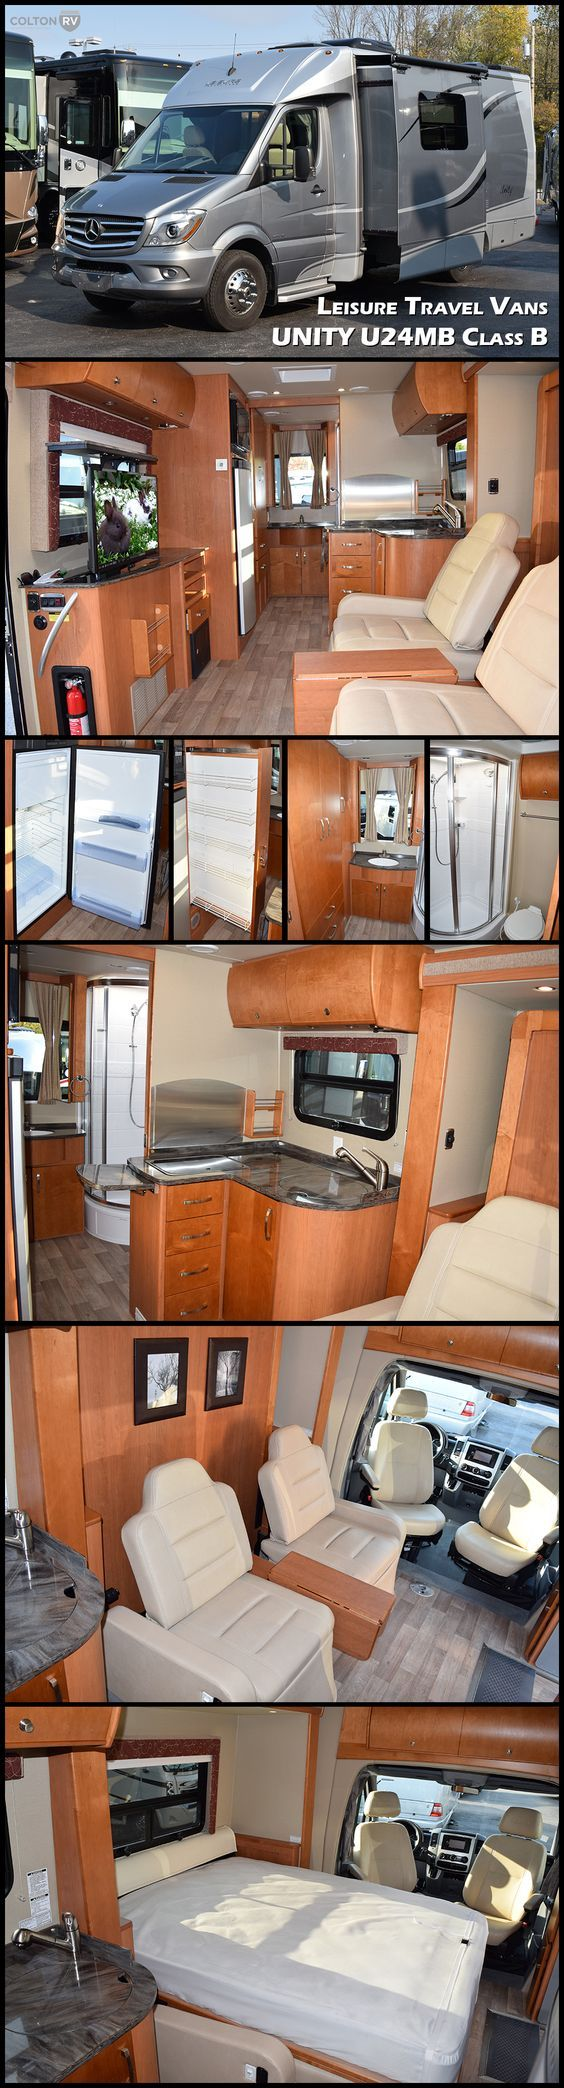 """UNITY U24M by LEISURE TRAVEL VANS Class B Motorhome. The U24MB is the Unity's flagship model, and there's no question why. Featuring a queen-size 60"""" x 74"""" automated murphy bed located in the slide, a pop-up 32"""" LED TV, curved European cabinetry throughout and a washroom to make any Class A envious, the U24MB is one big """"little"""" motorhome."""